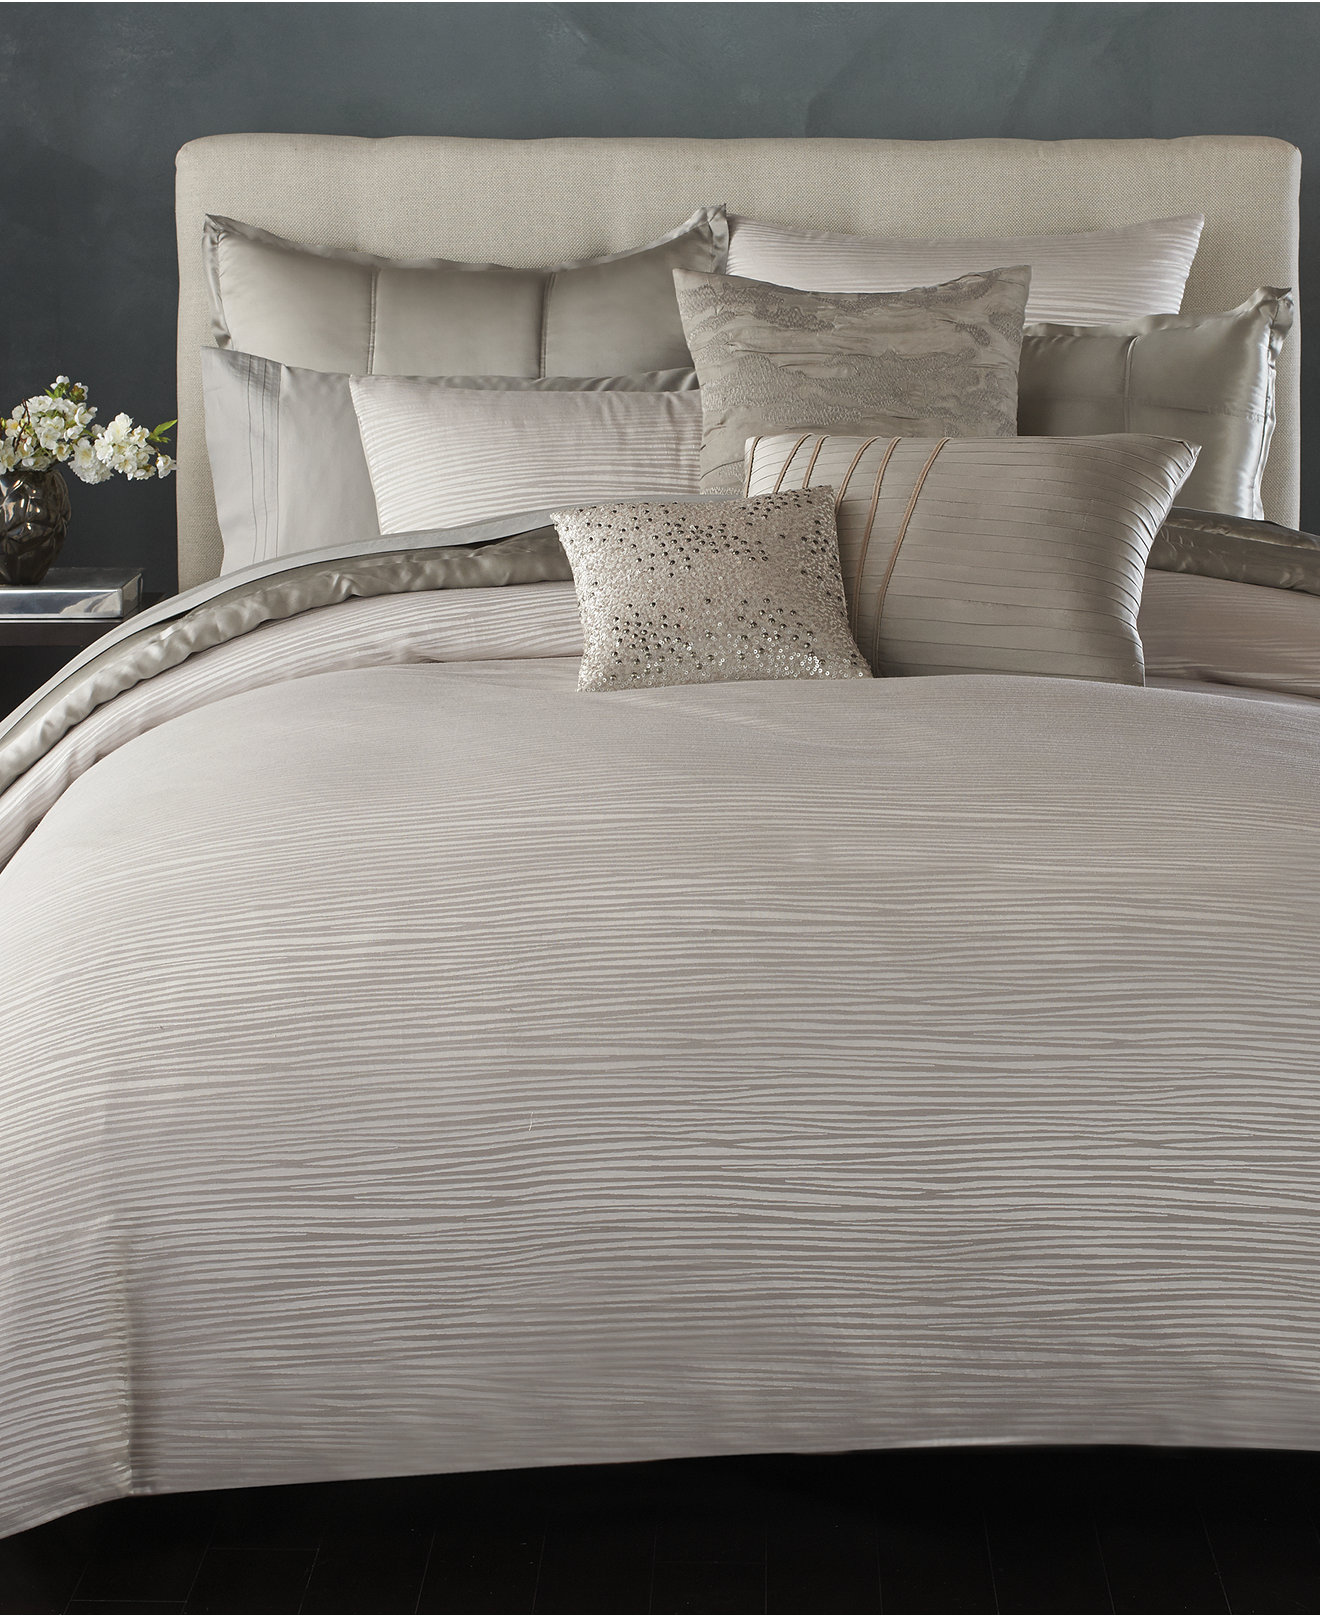 Amusing donna karan bedding with Cushion and pillows also beautiful duvet cover and sidetable and luxury wall paint color